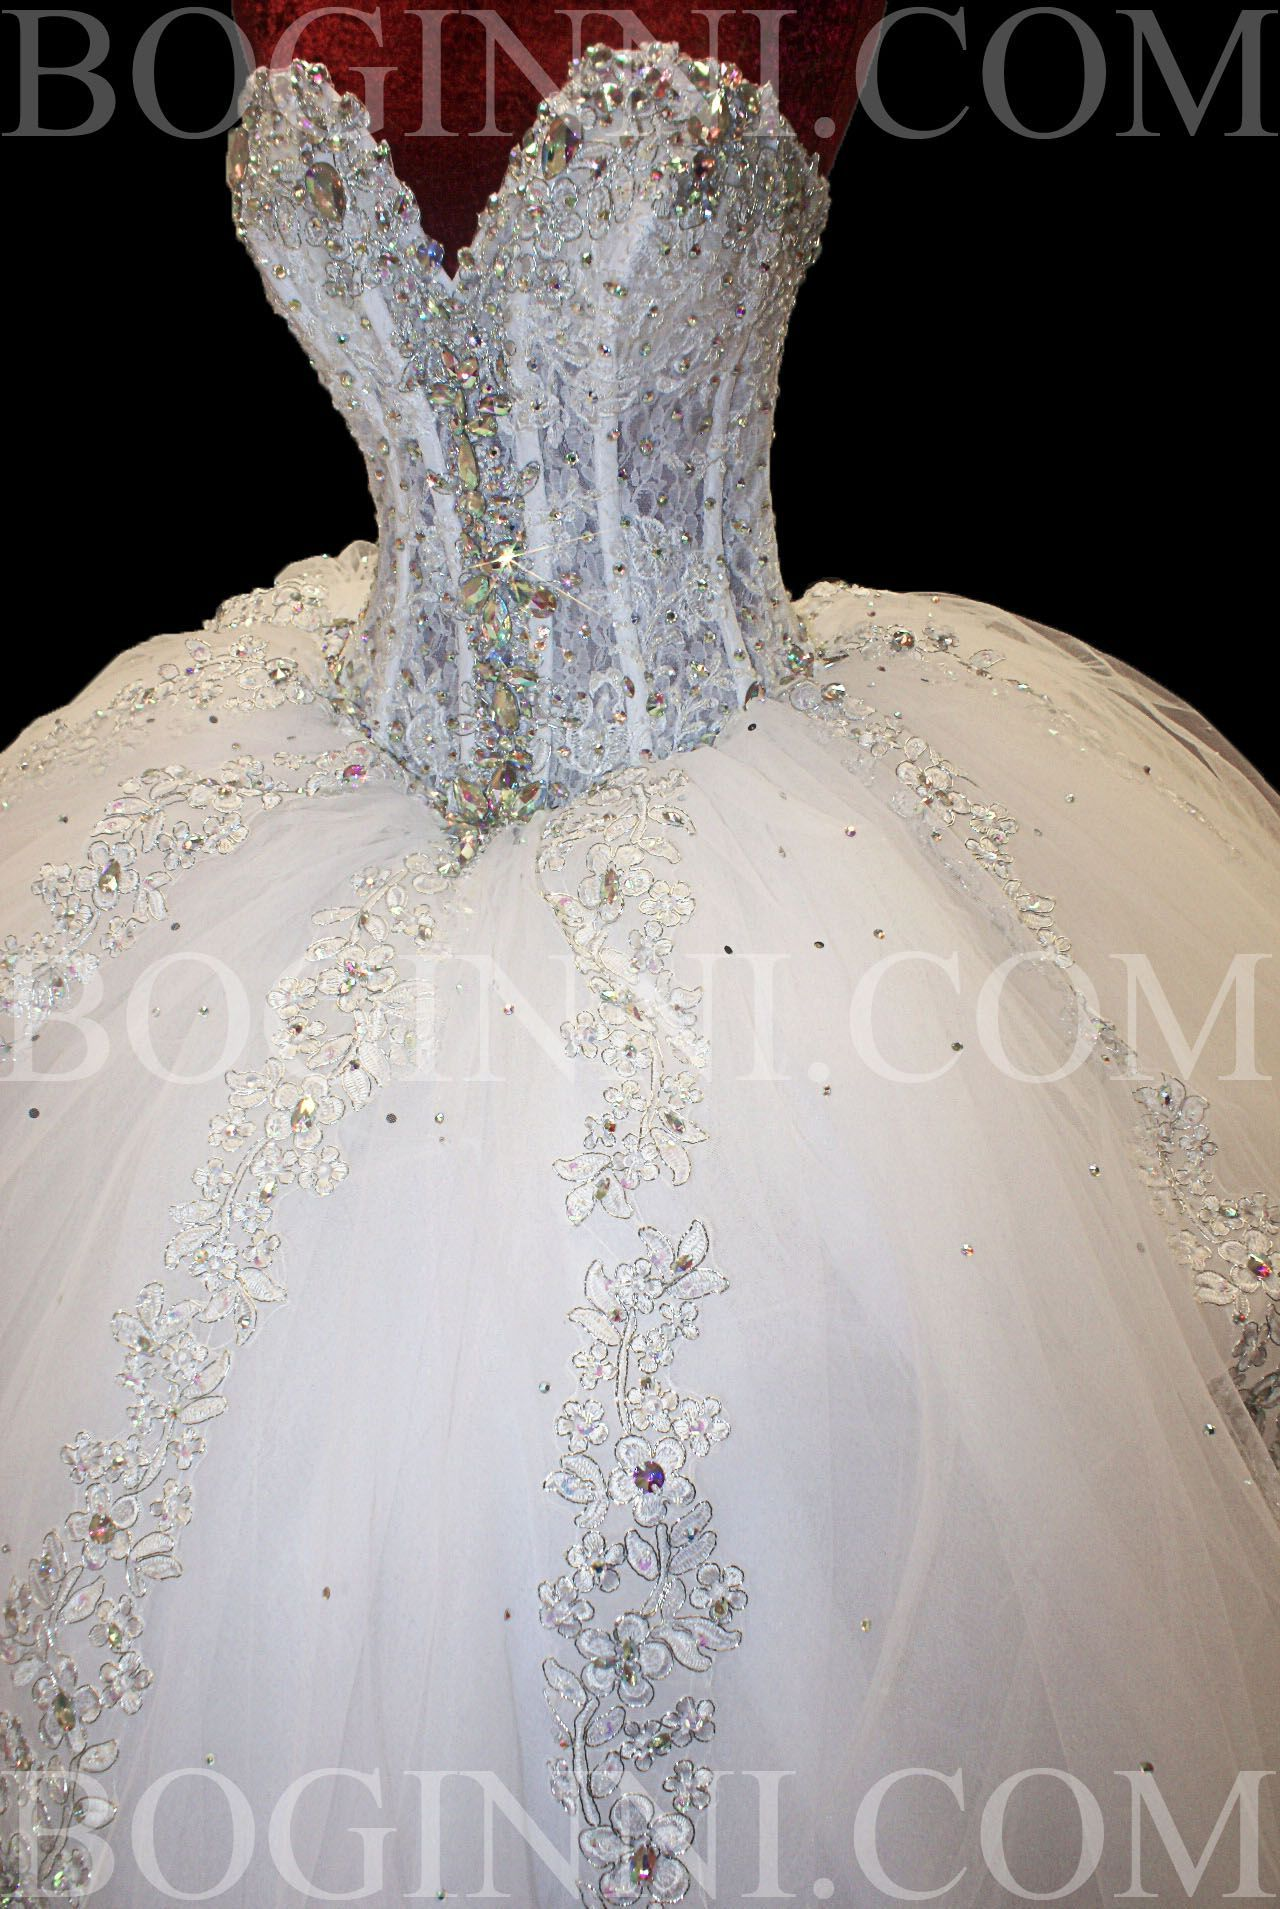 af9e2b3384d MADE WHITE AB CRYSTAL 250CM WIDE BIG WEDDING DRESS WITH LONG TRAIN.. my  dream gown